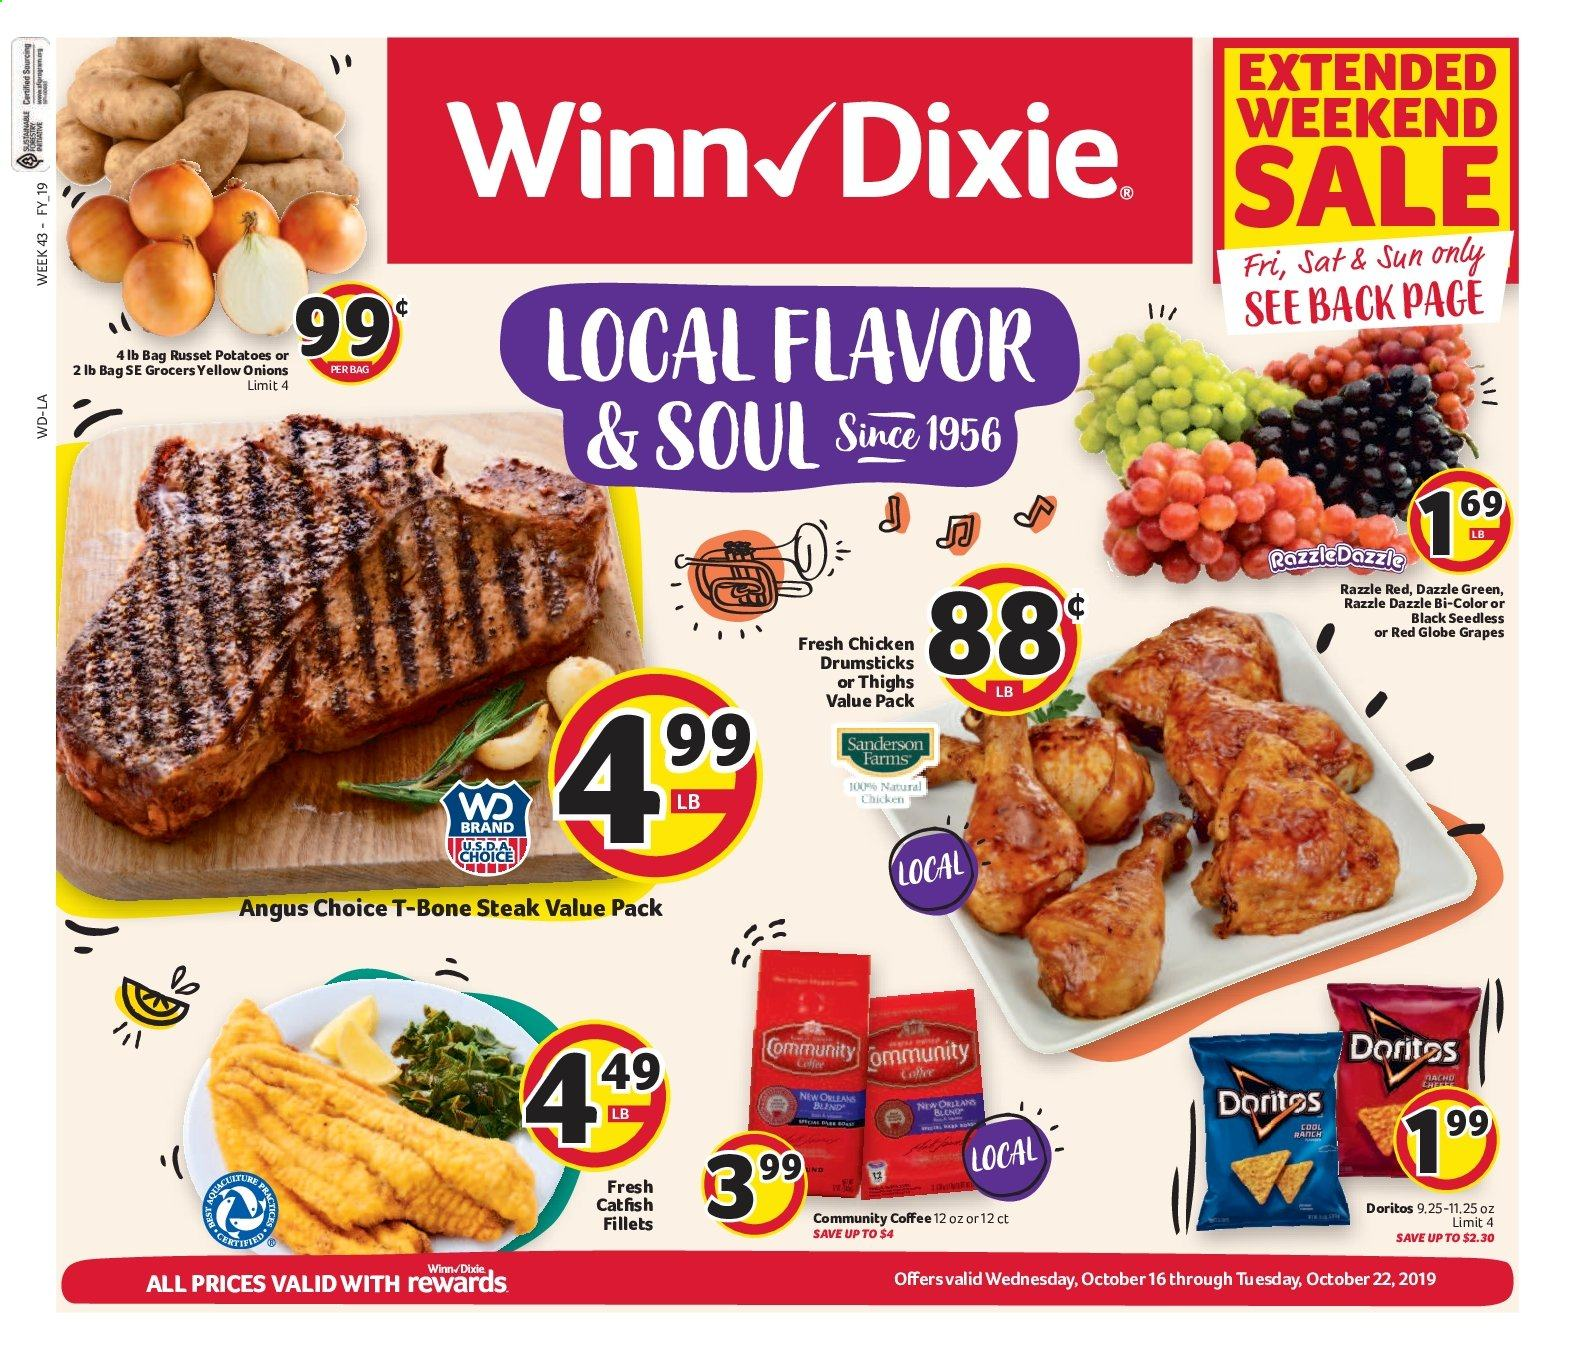 Winn Dixie Flyer - 10.16.2019 - 10.22.2019 - Sales products - russet potatoes, yellow onions, potatoes, onion, grapes, red globe grapes, chicken, chicken legs, t-bone steak, steak, catfish, Doritos, coffee. Page 1.